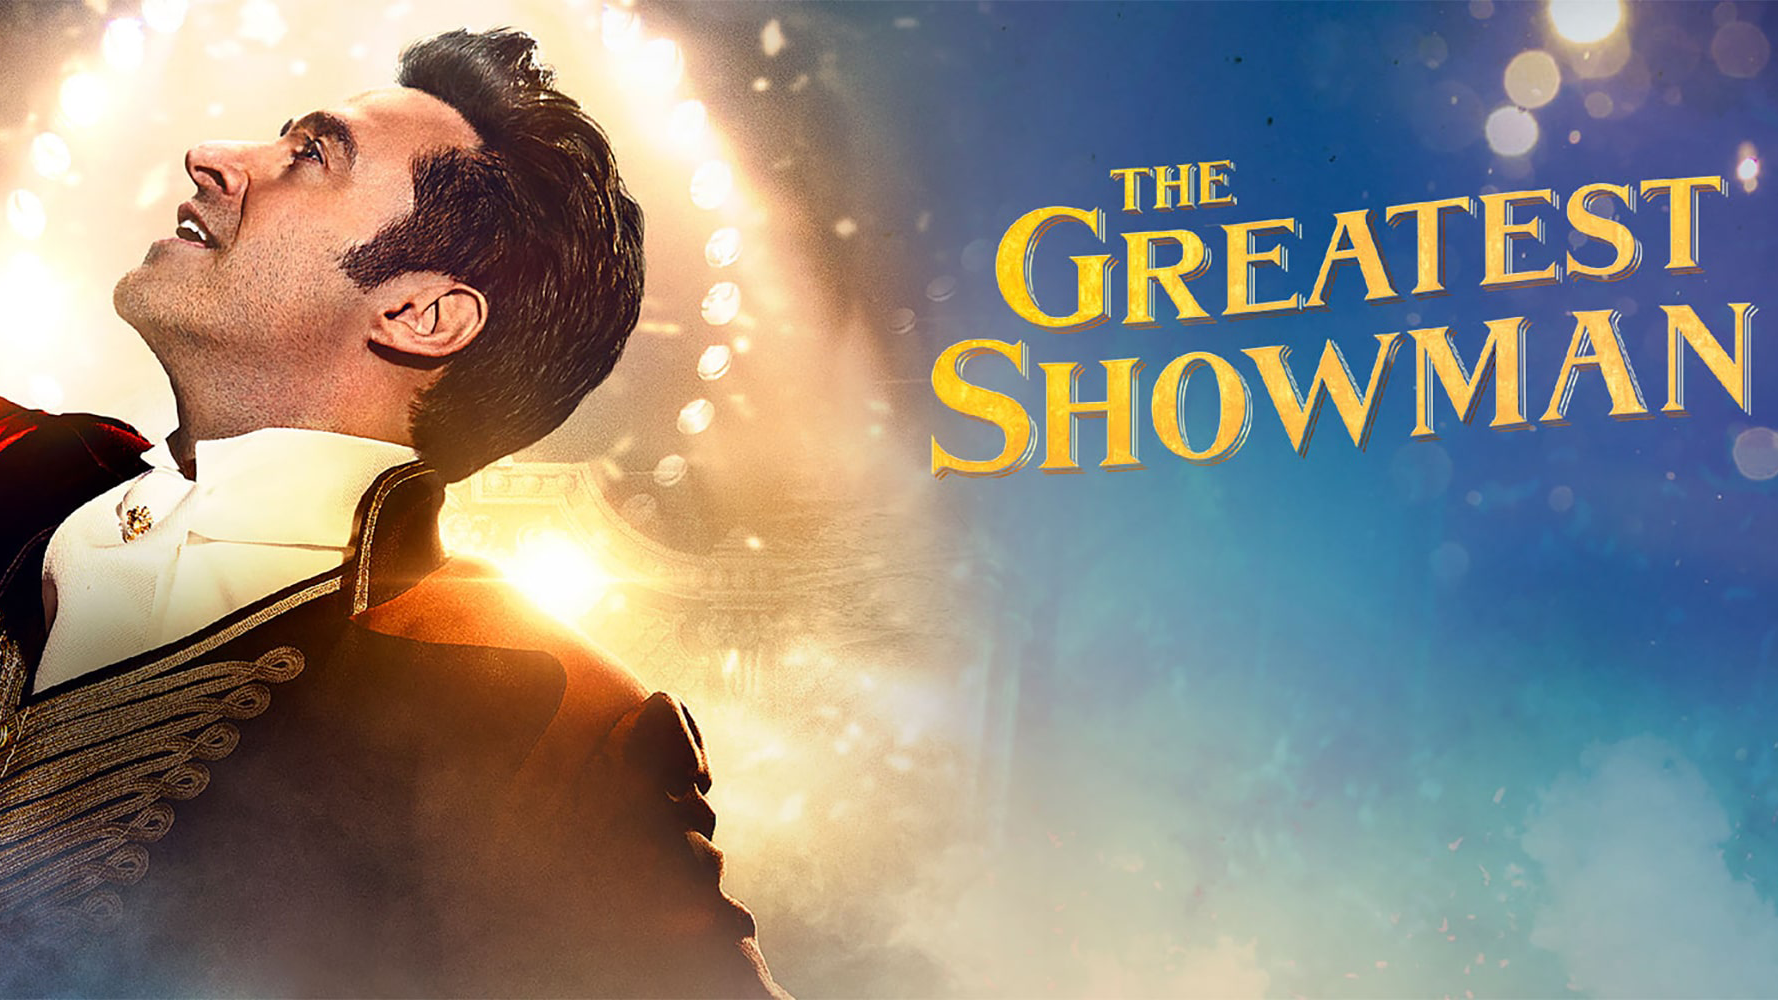 The Greatest Showman - Sunday 01.09.19 I 2.30pm